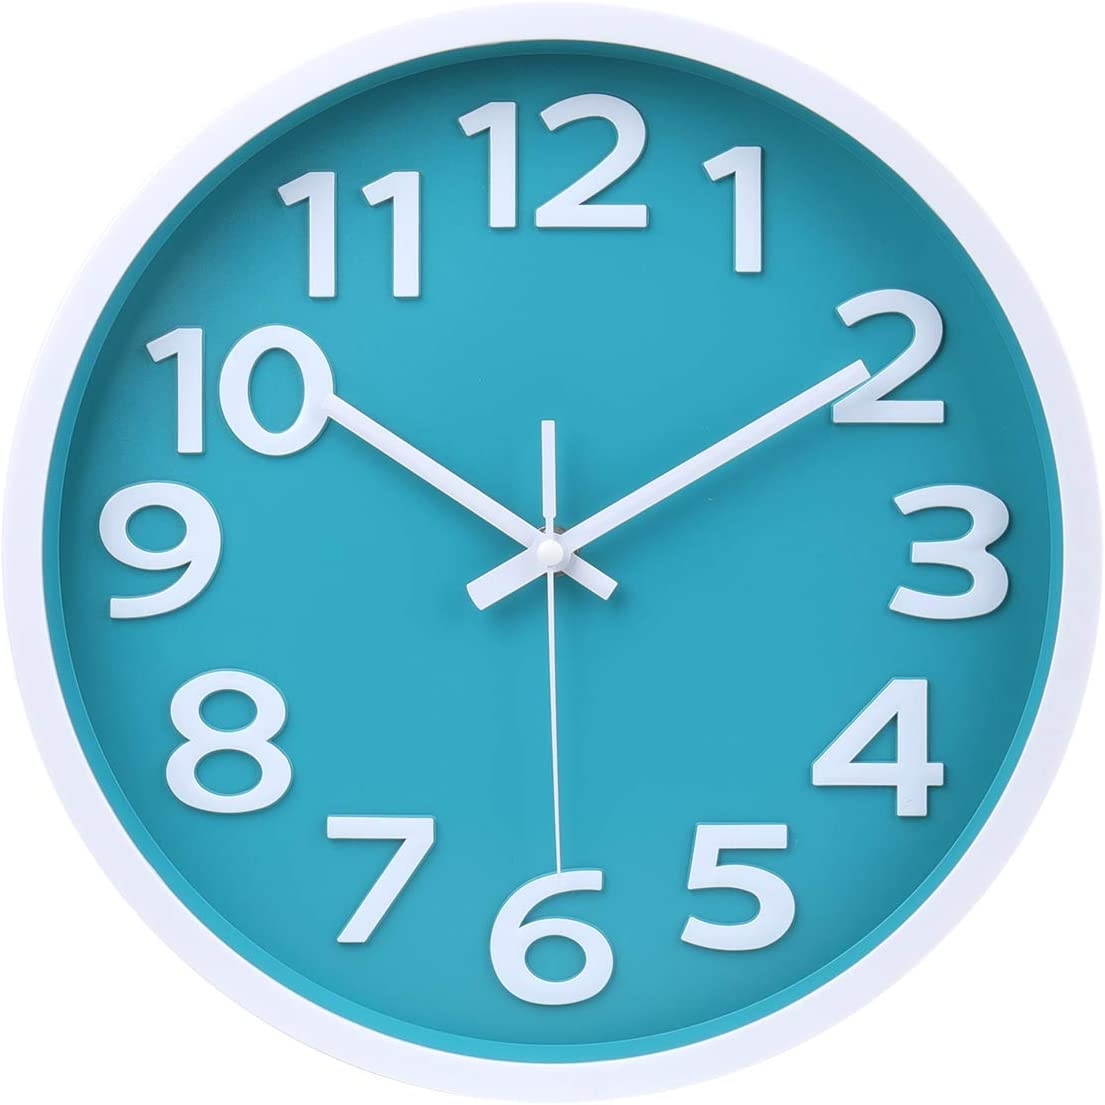 Wall Clock - 12 Inch 3D Numbers Easy to Read Round Wall Clock Silent Non-Ticking Battery Operated Teal Color Decor Clock for Living Room / Office / Bedroom